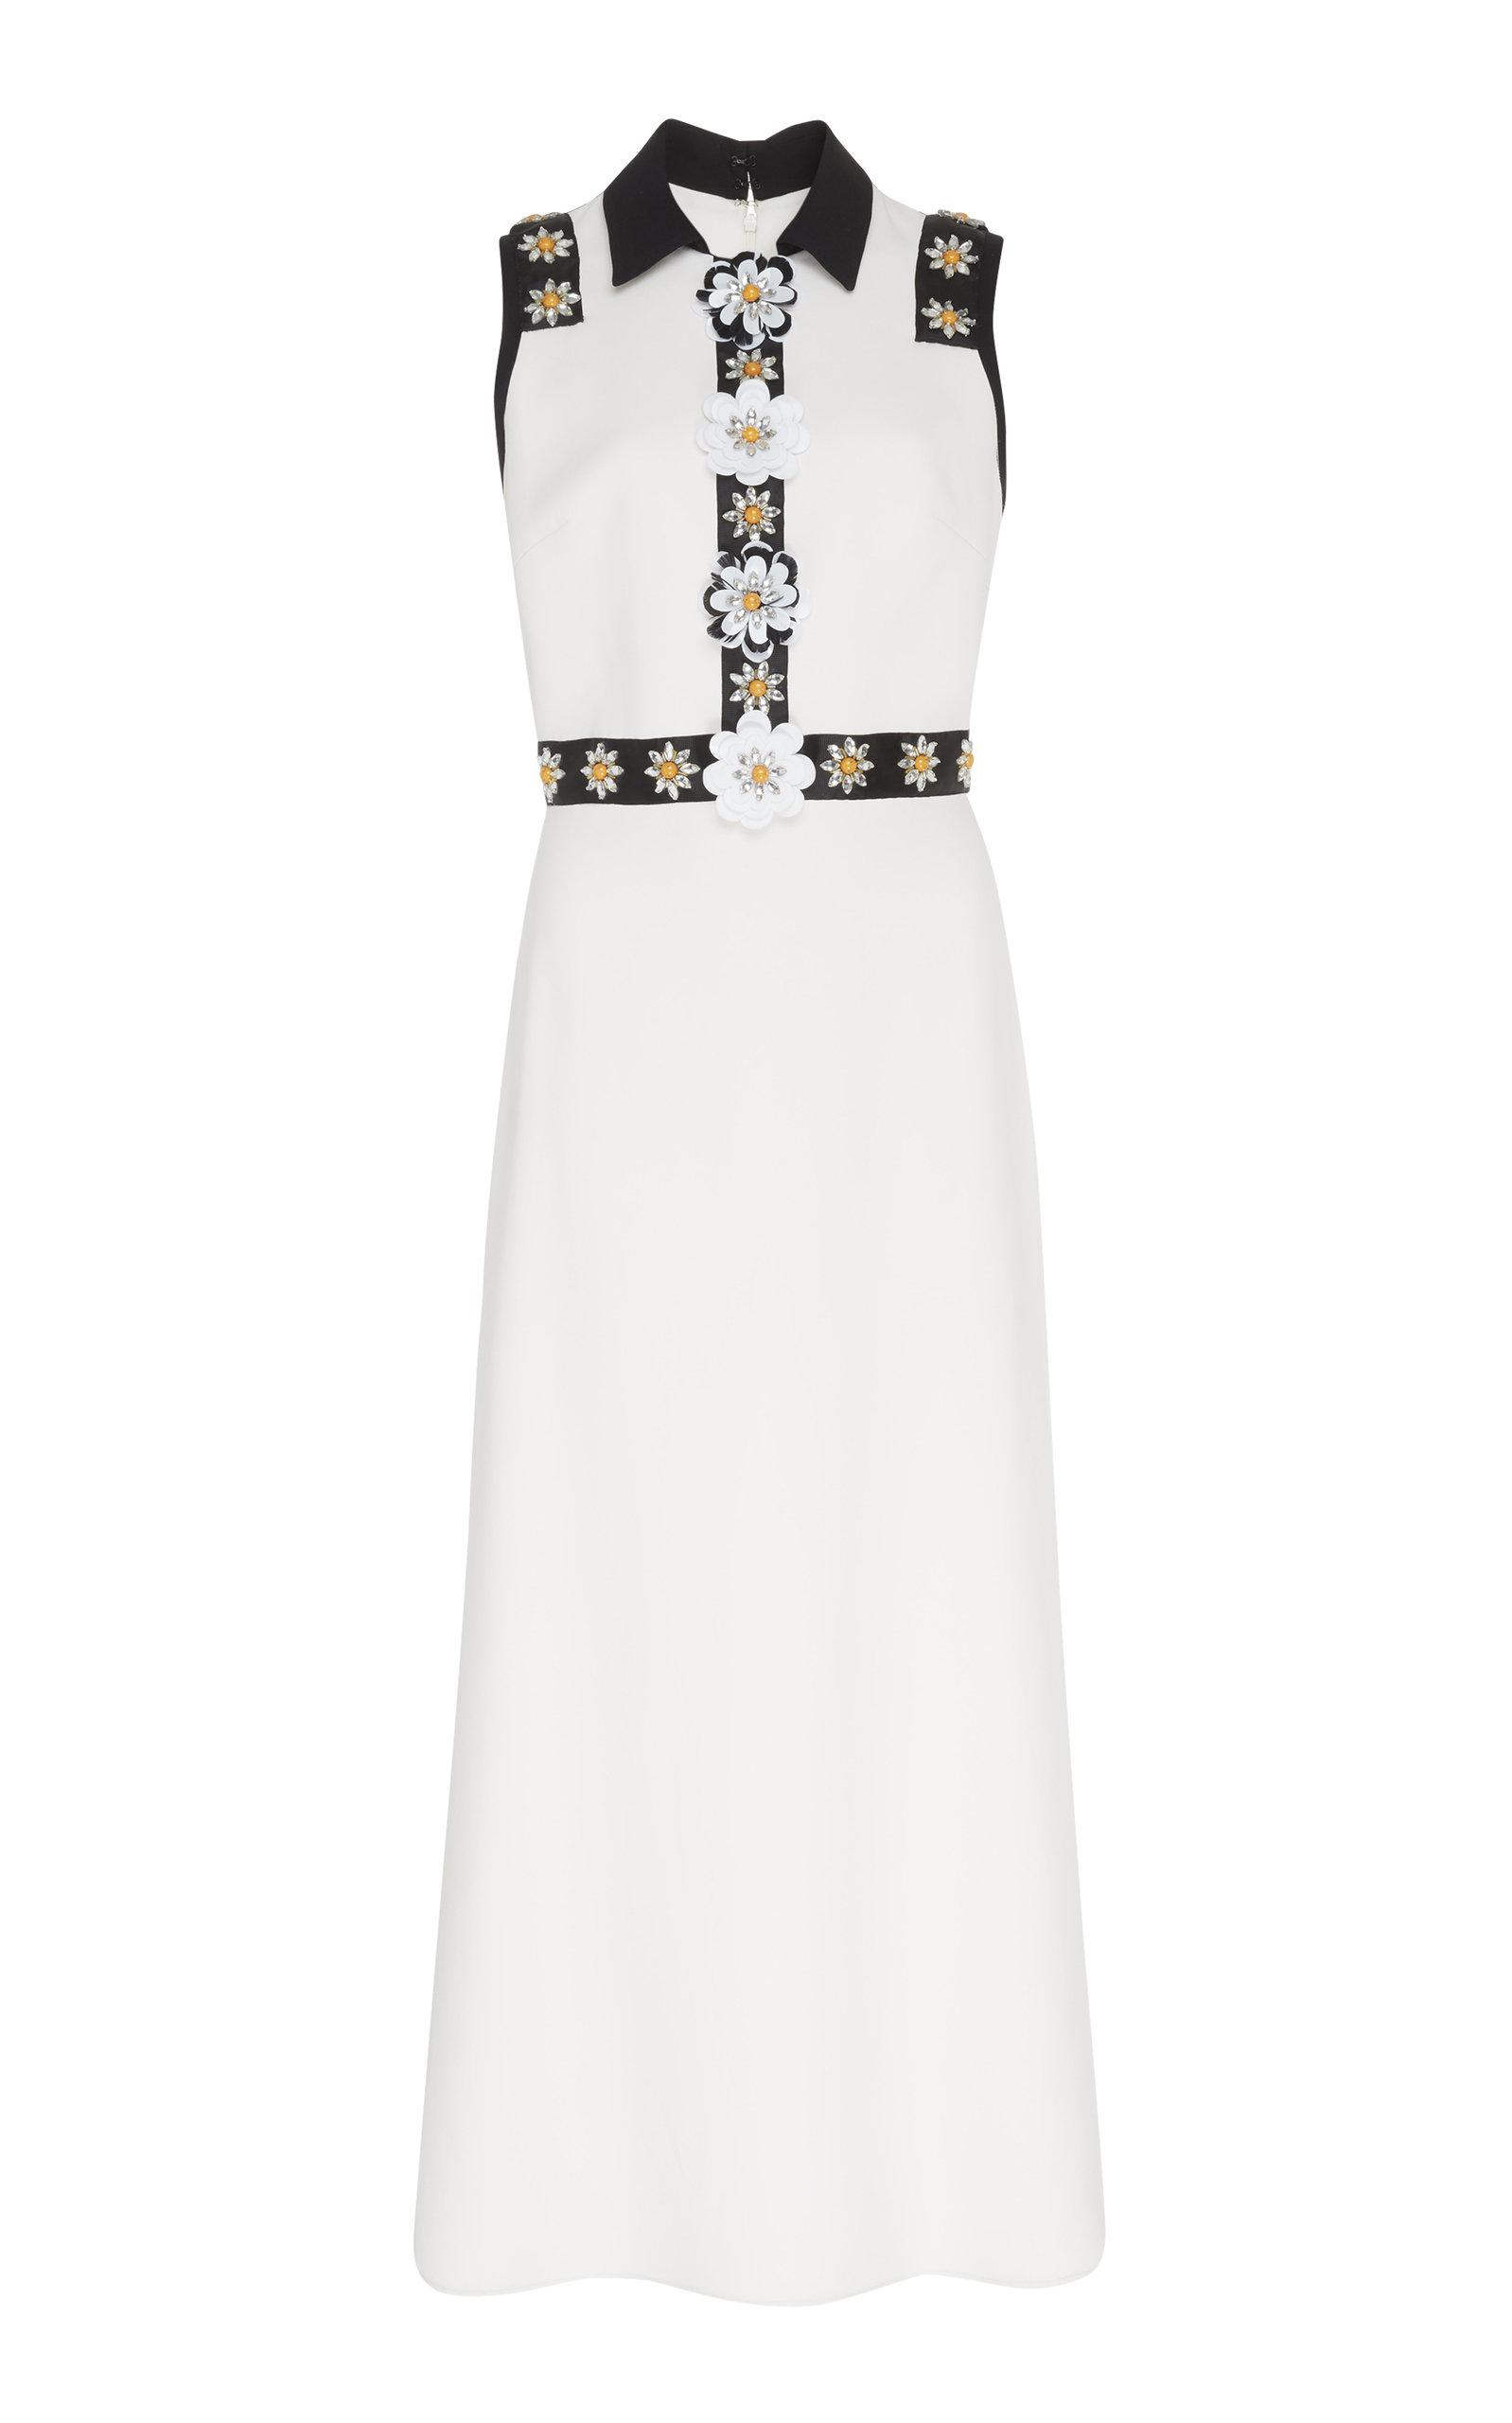 aa6531a8628 Lyst - Elie Saab Flutter Midi Dress in White